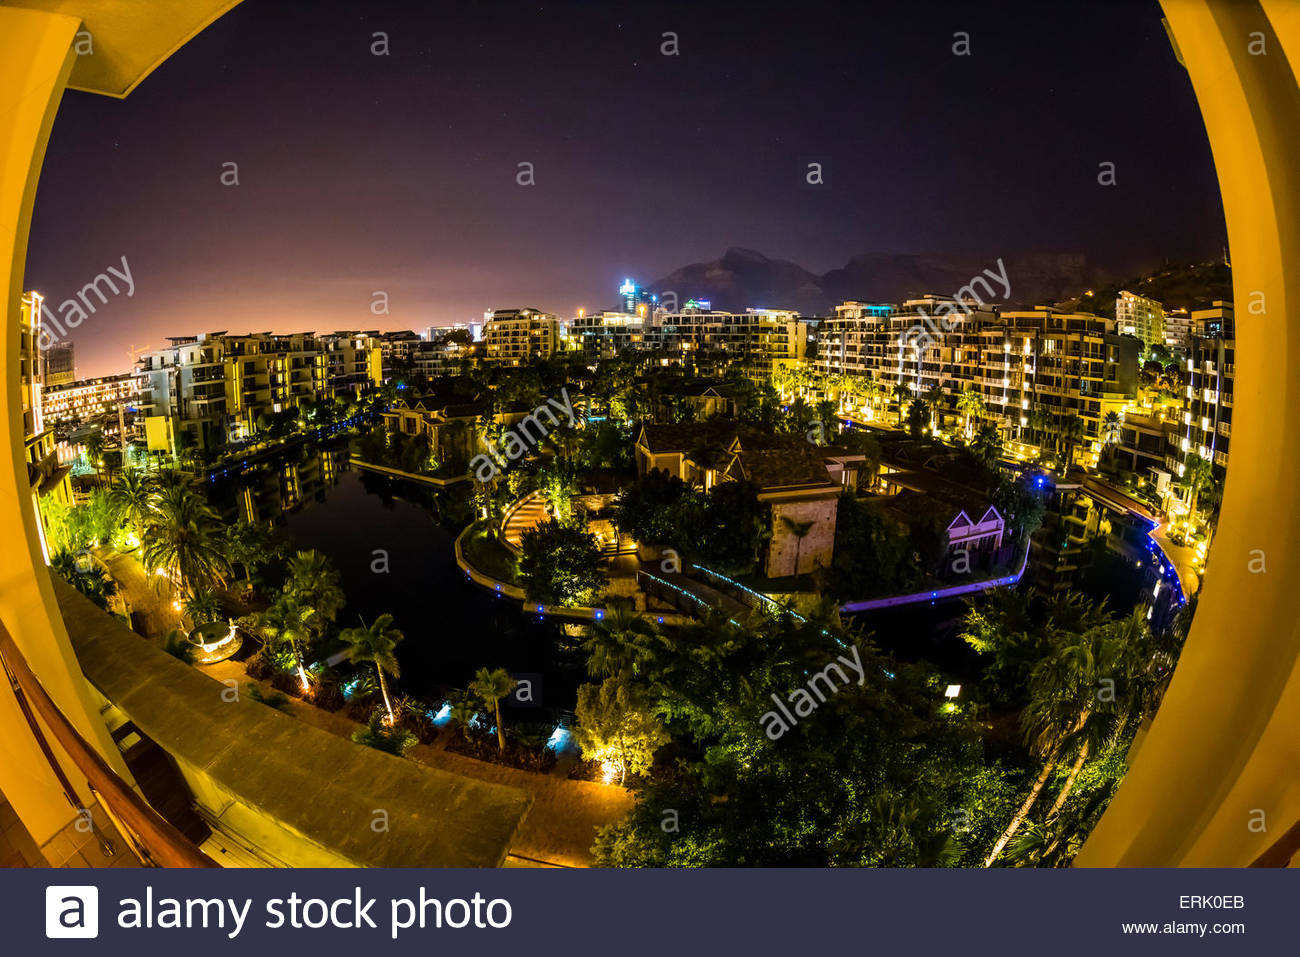 View From Balcony At Night With Apartment Buildings And Table Stock